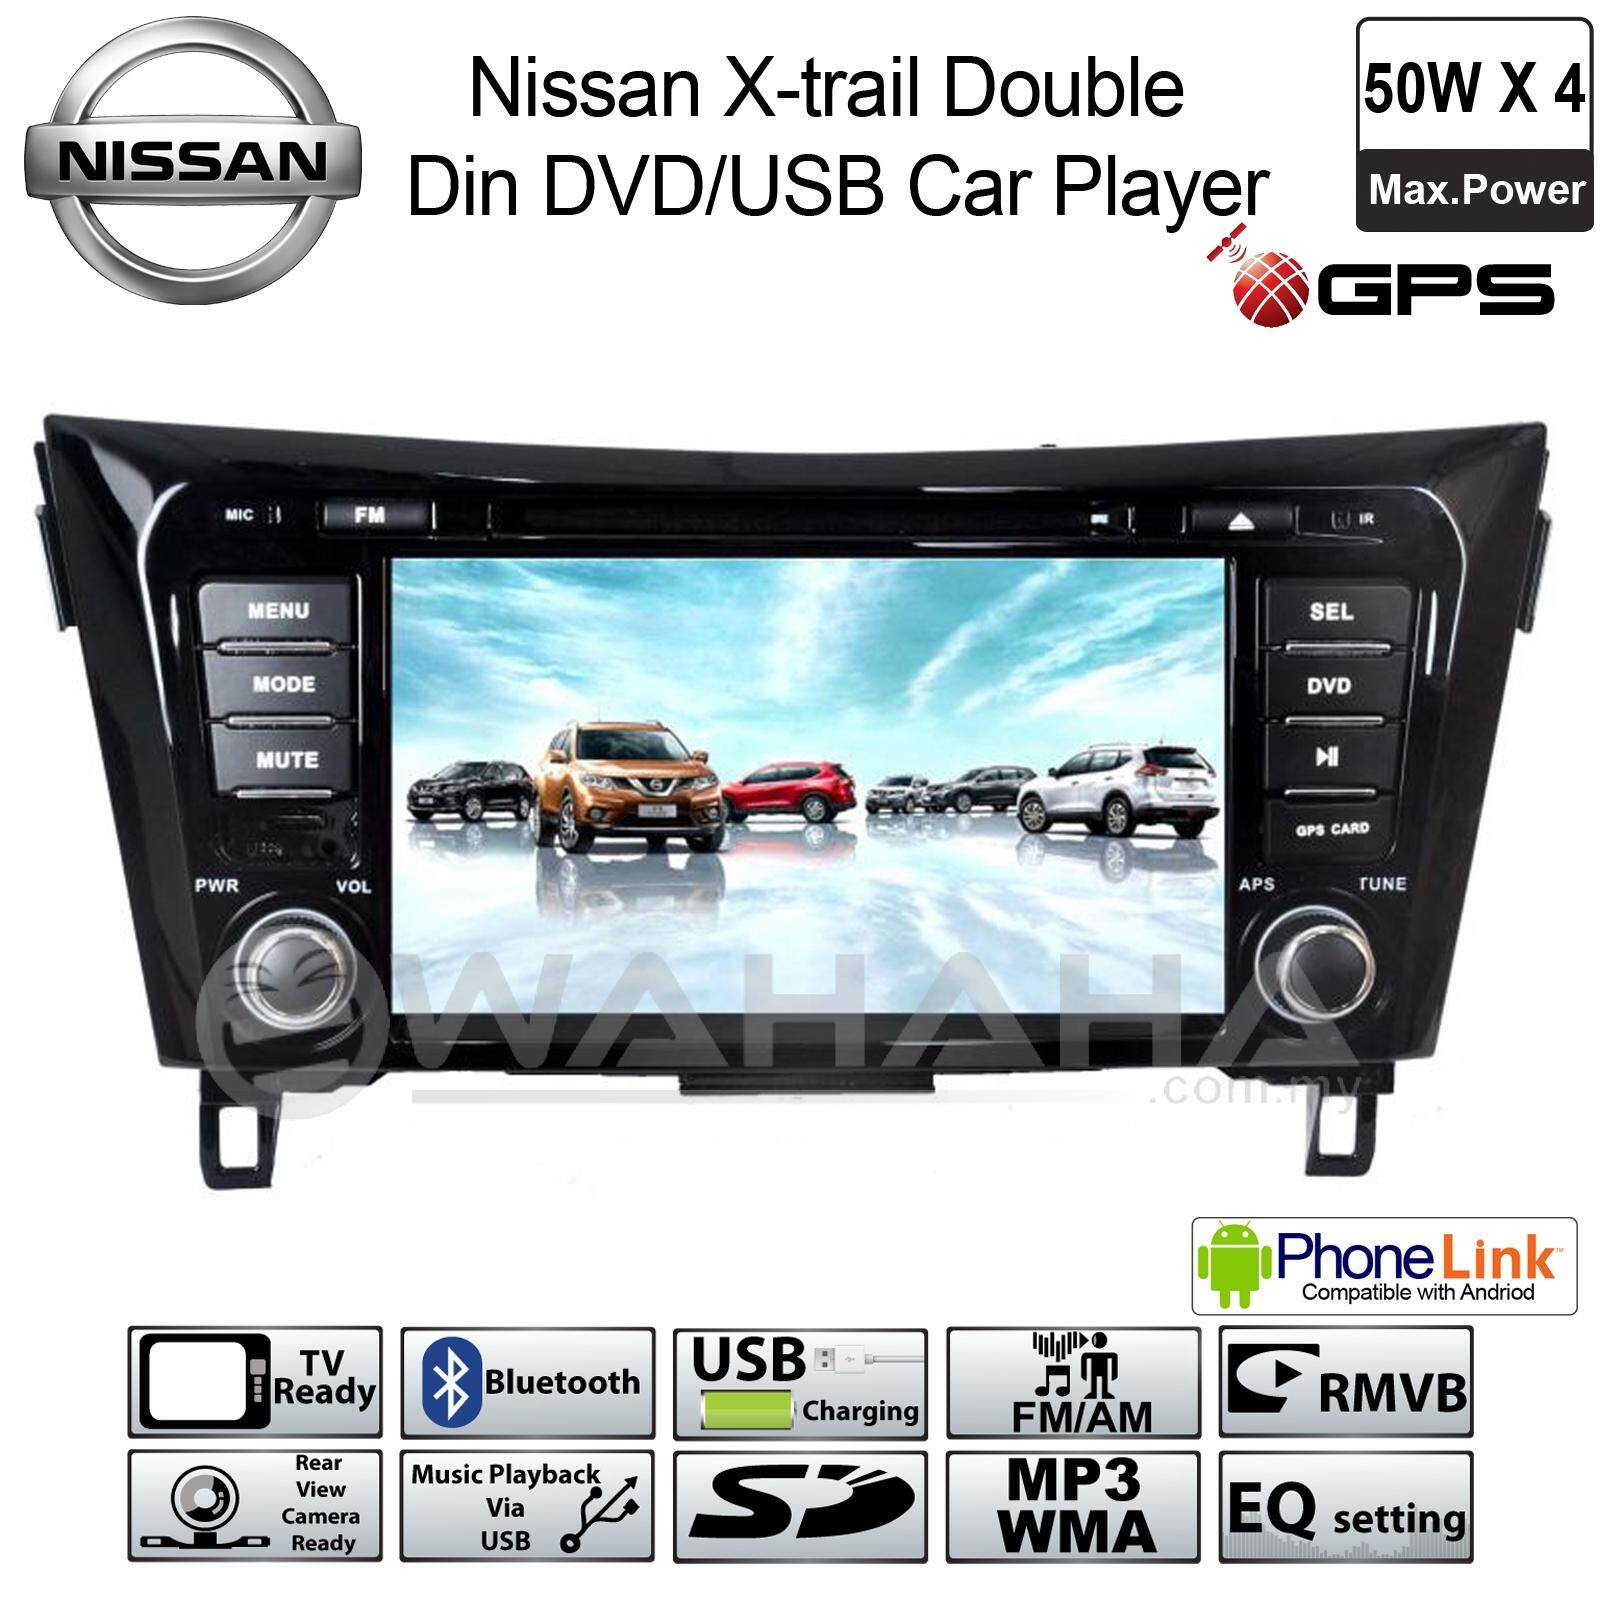 Special Offer Price!!! NISSAN X-TRAIL Plug & Play OEM Double Din DVD USB Bluetooth GPS Car Audio Player